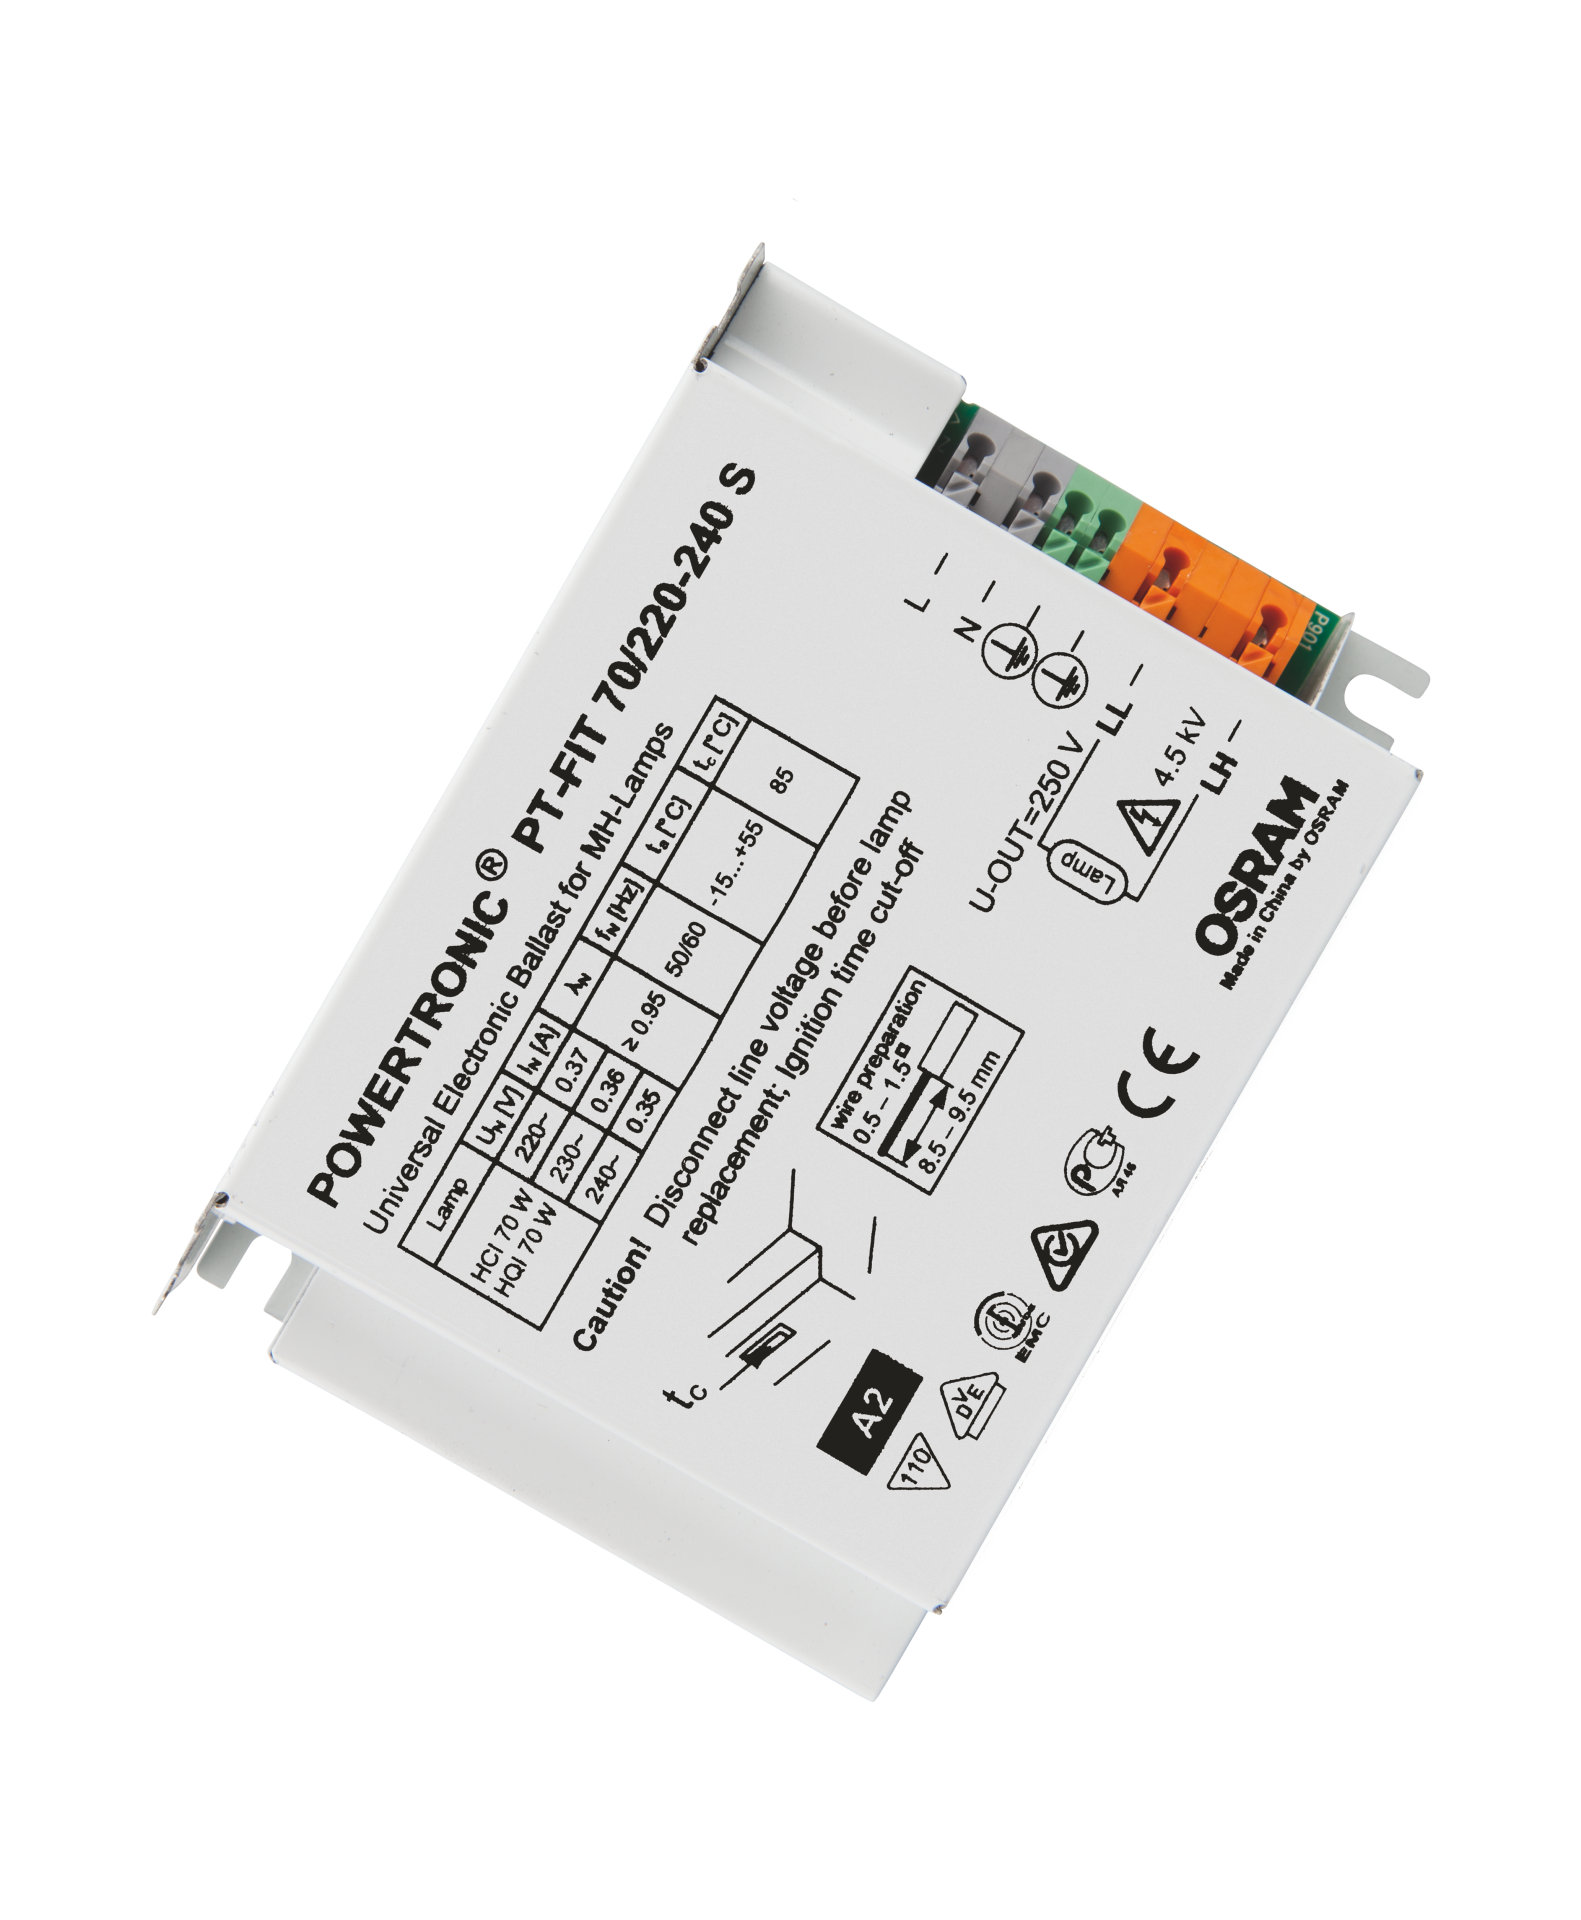 POWERTRONIC PT-FIT S ECG for HID lamps, for installation in luminaires